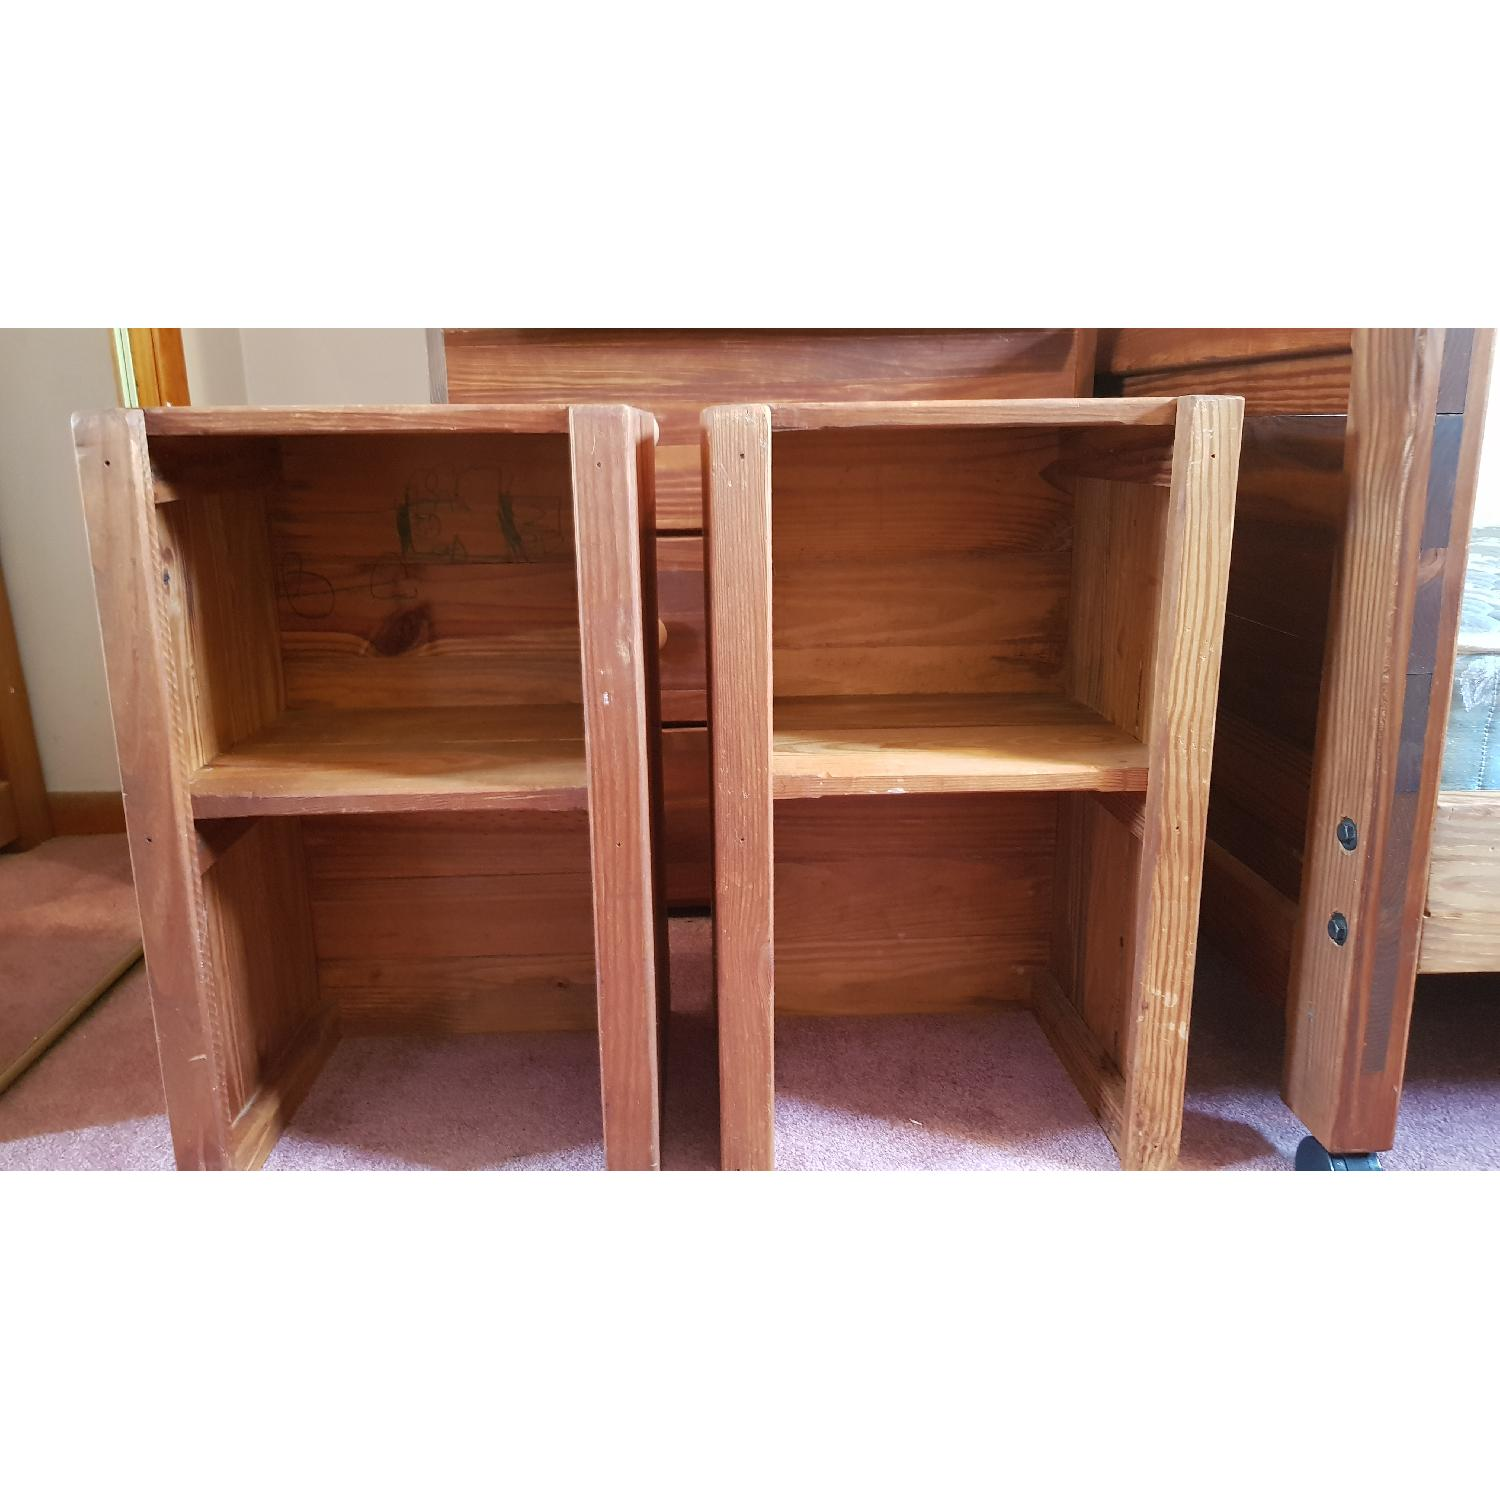 Wood Nightstands/Side Tables - image-1